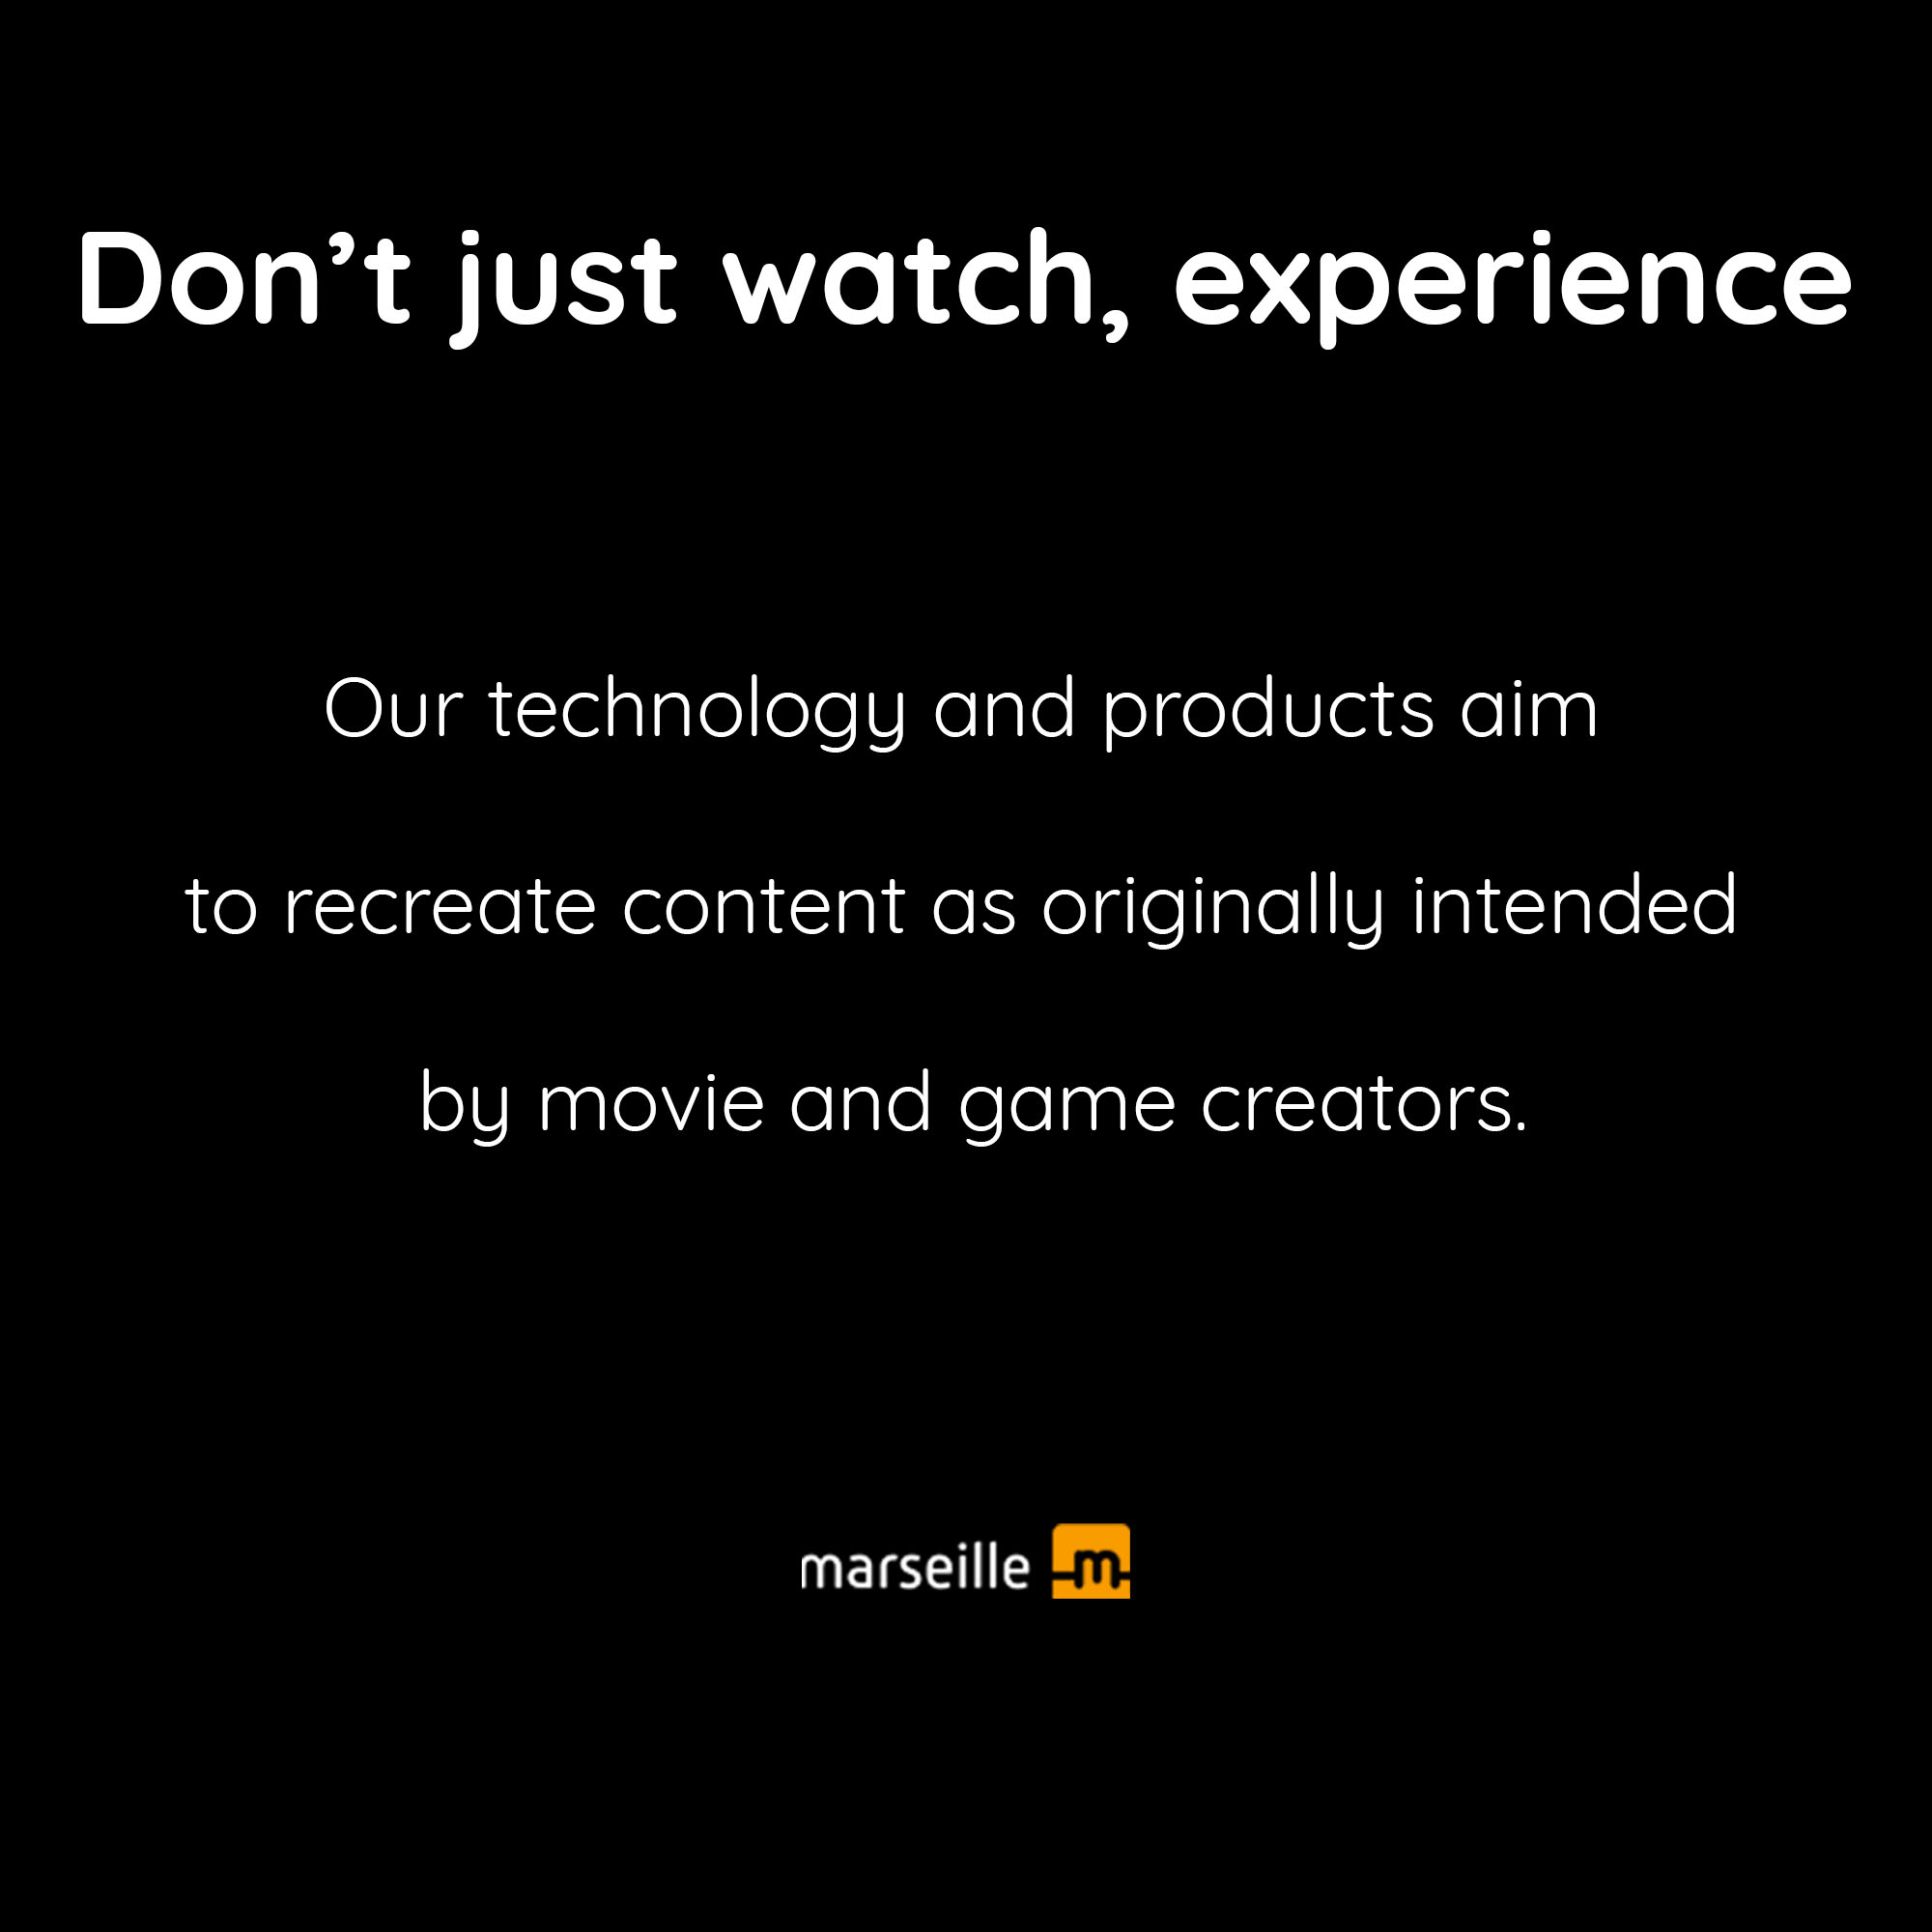 Our technology and products aim to recreate content as originally intended by movie and game creators.